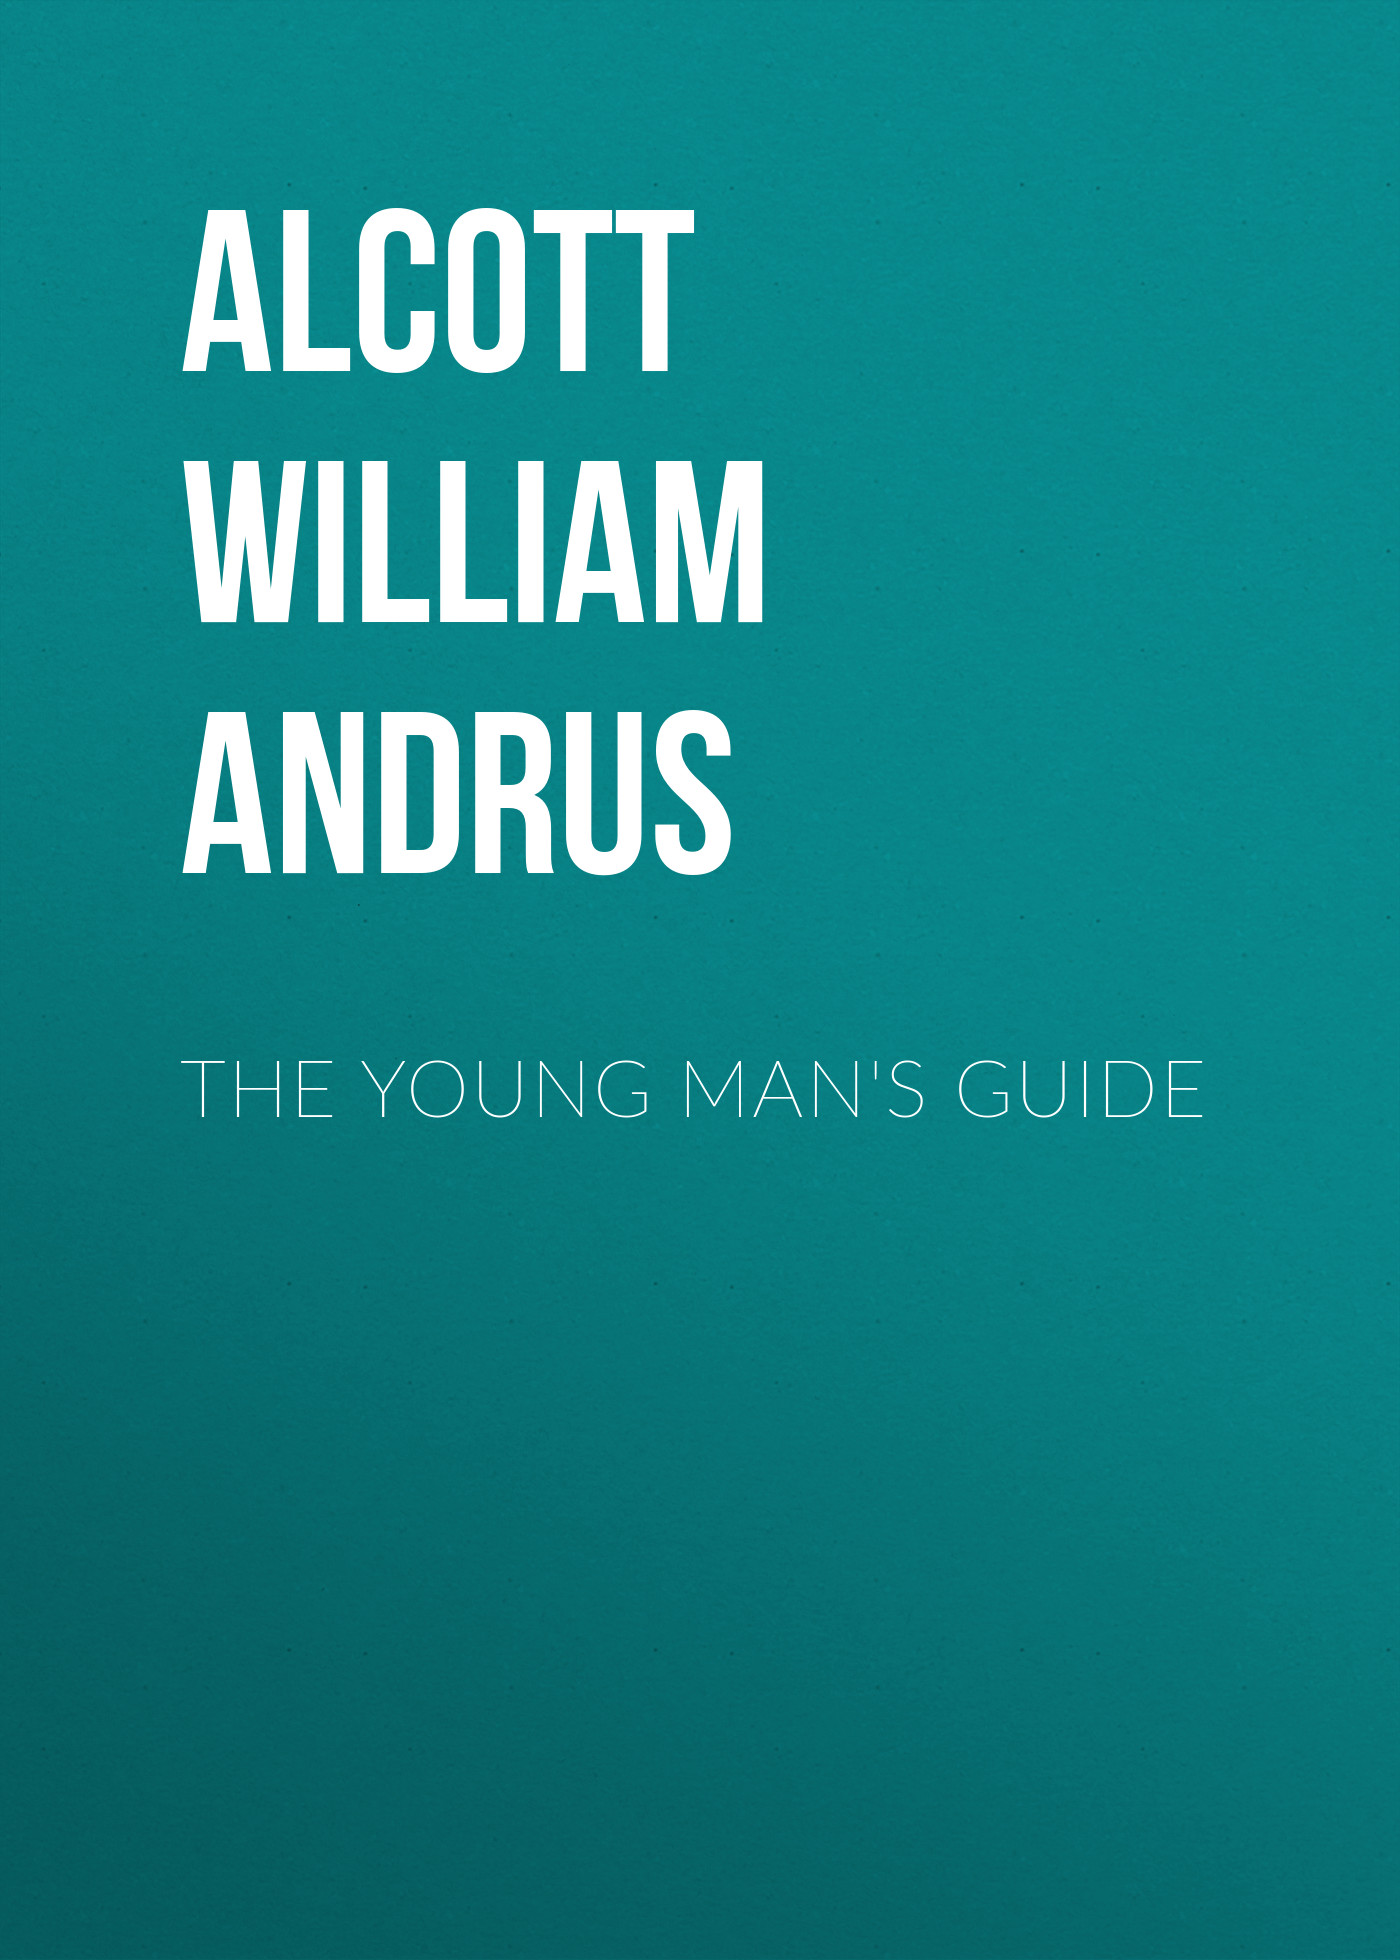 Alcott William Andrus The Young Man's Guide шорты alcott alcott al006emgdlc5